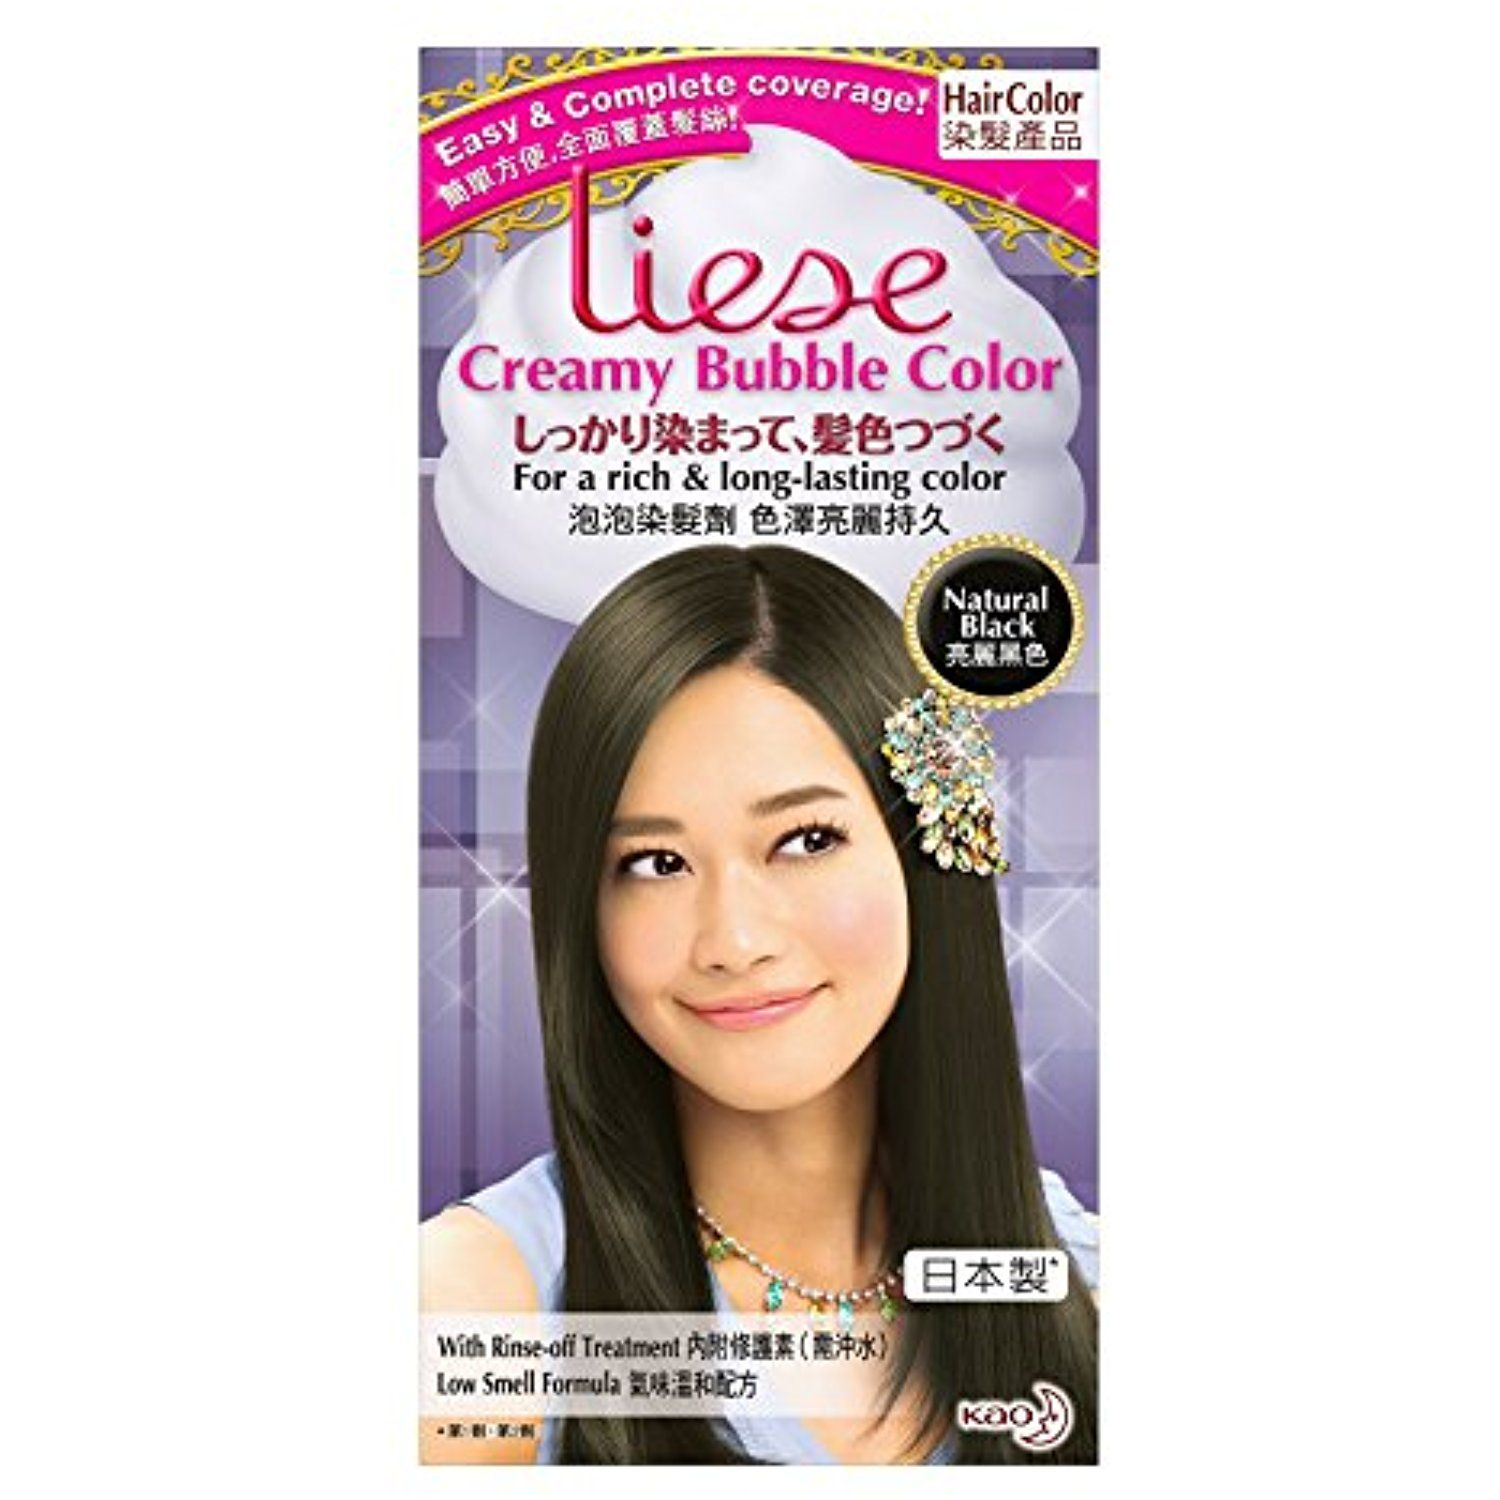 Kao Liese Soft Bubble Hair Color Natural Black Cover Gray Hair Want To Know More Click On The Image Th Liese Hair Color Hair Color Natural Hair Color